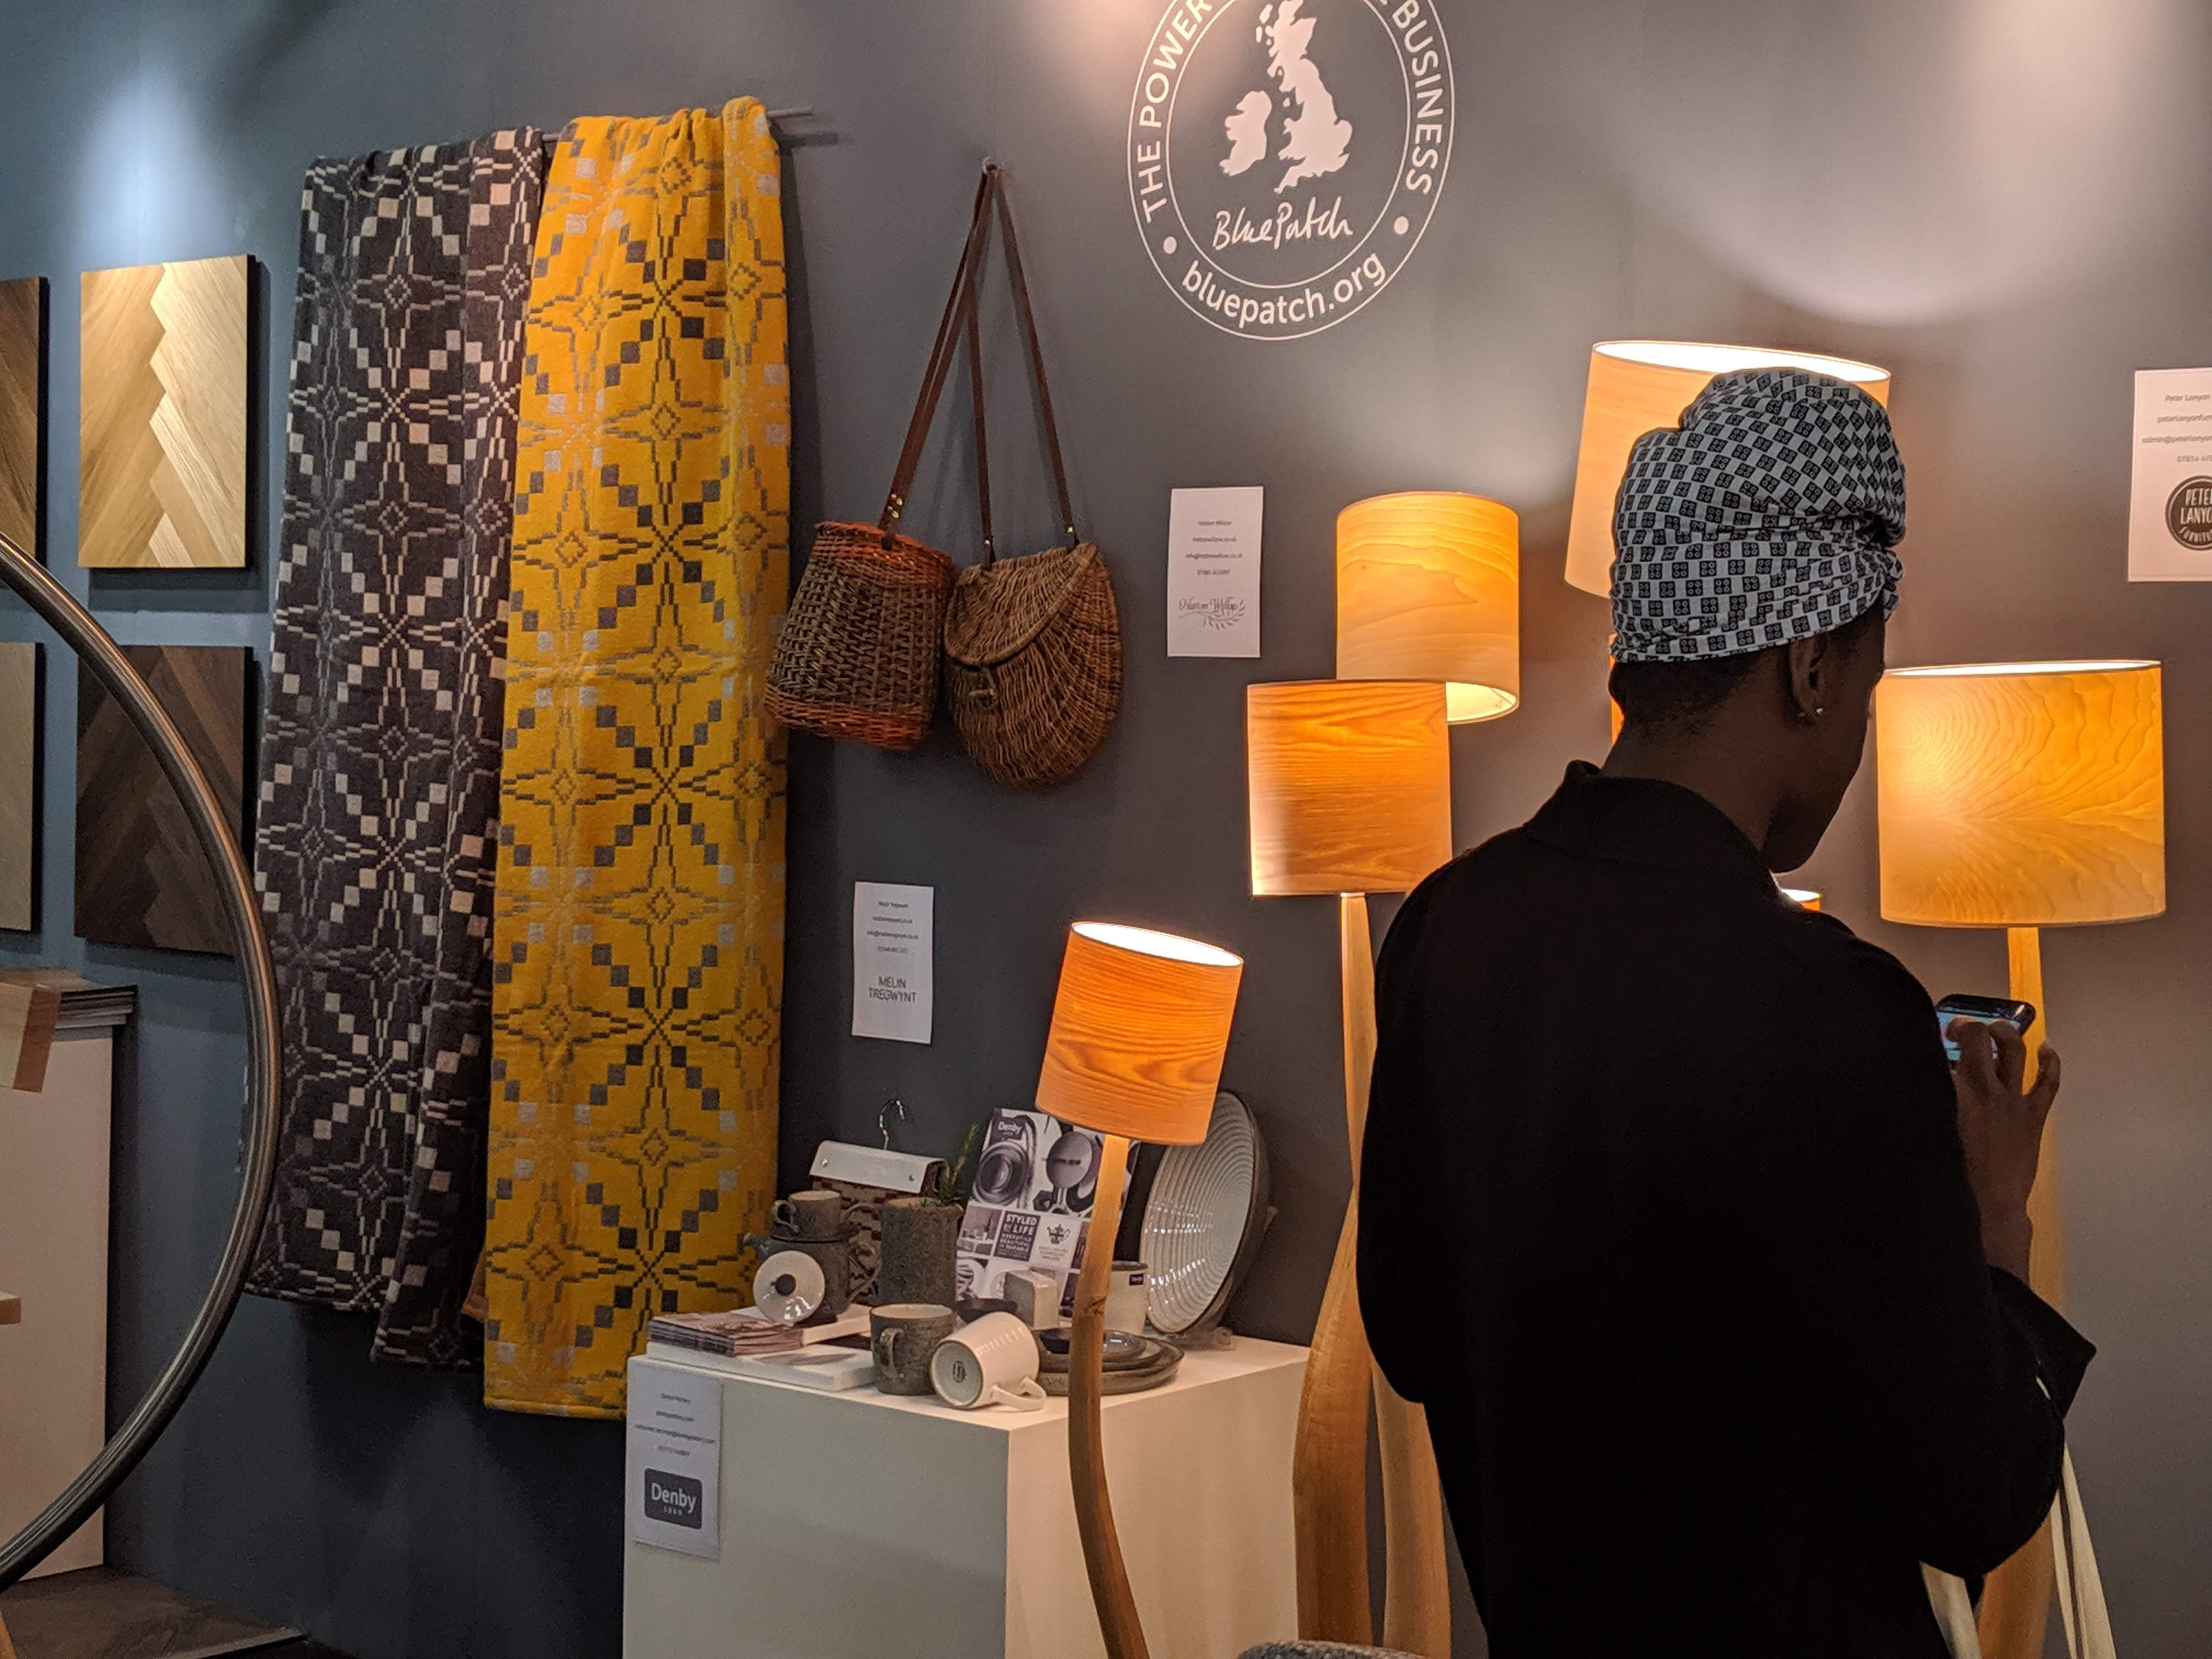 Woman in a headdress texting a message in Instagram, looking at the Blue Patch stand at London Design fair 2019